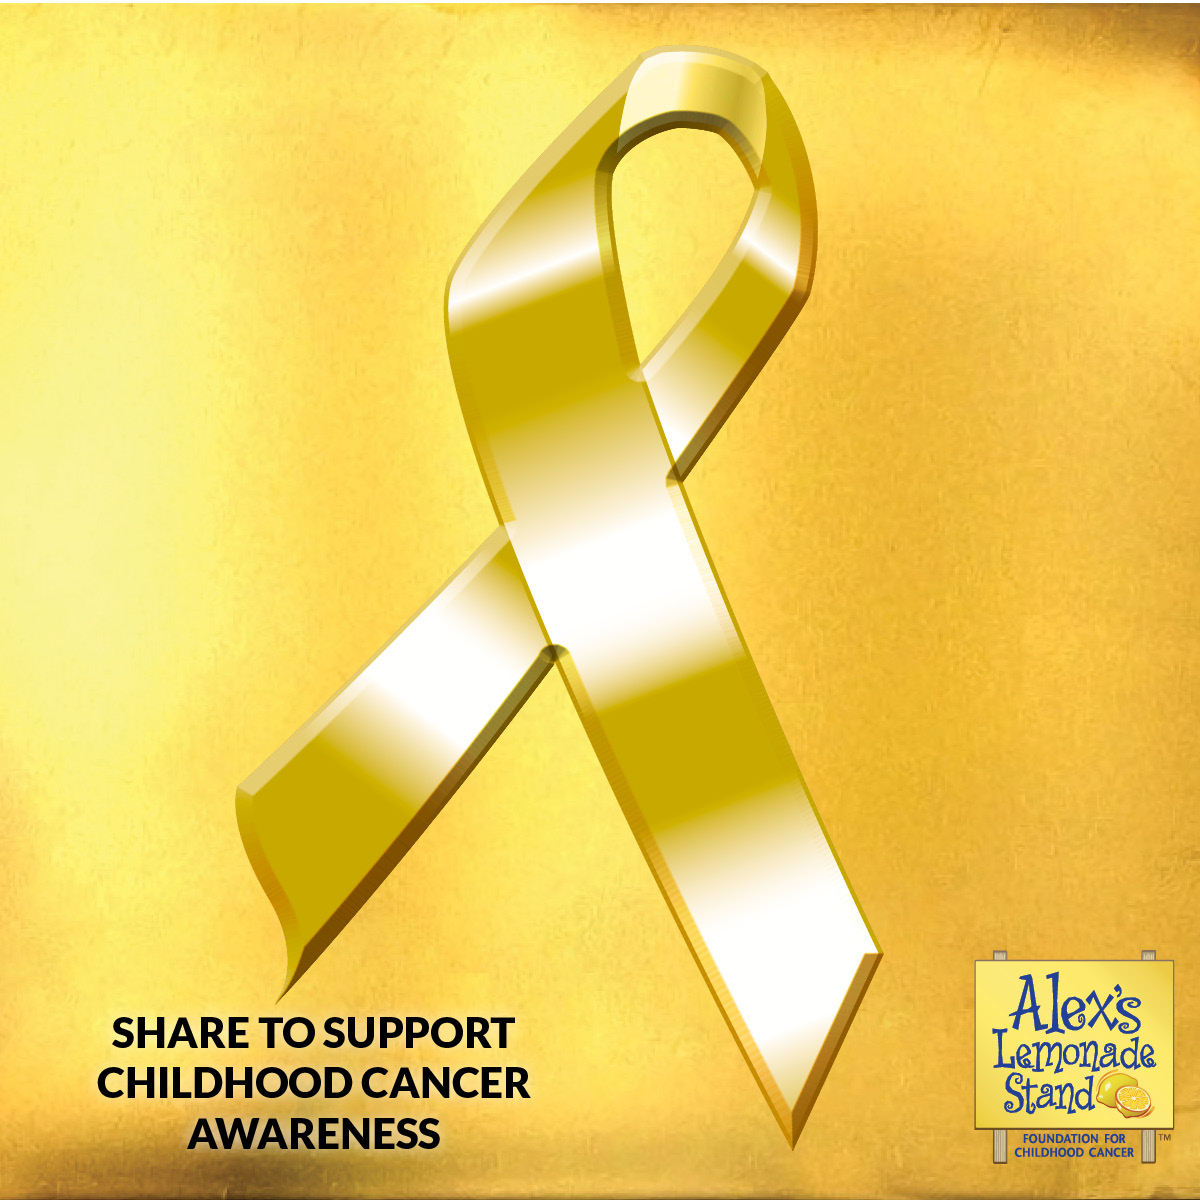 Share this gold ribbon for childhood cancer awareness month in September